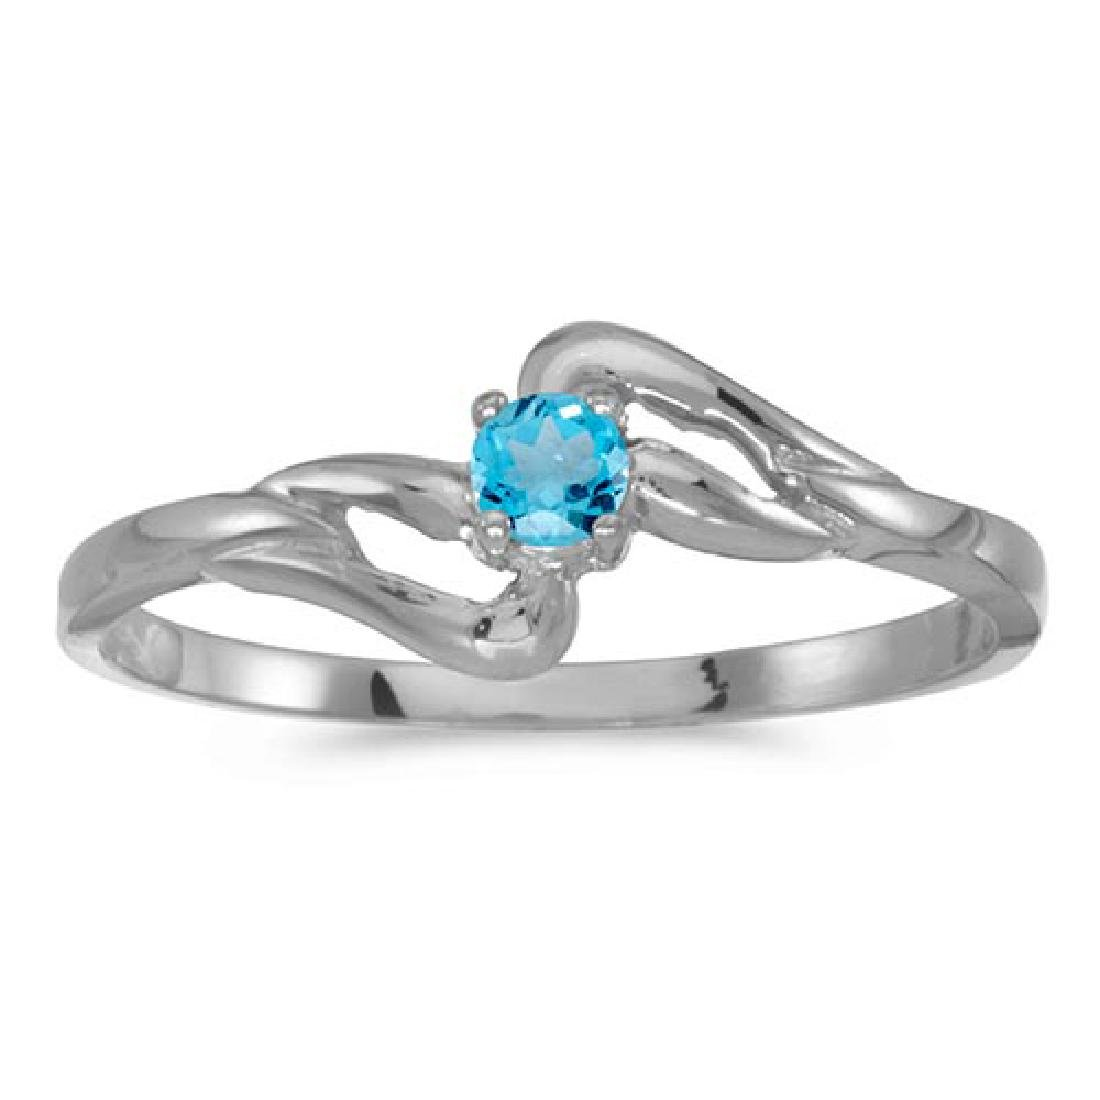 Certified 14k White Gold Round Blue Topaz Ring